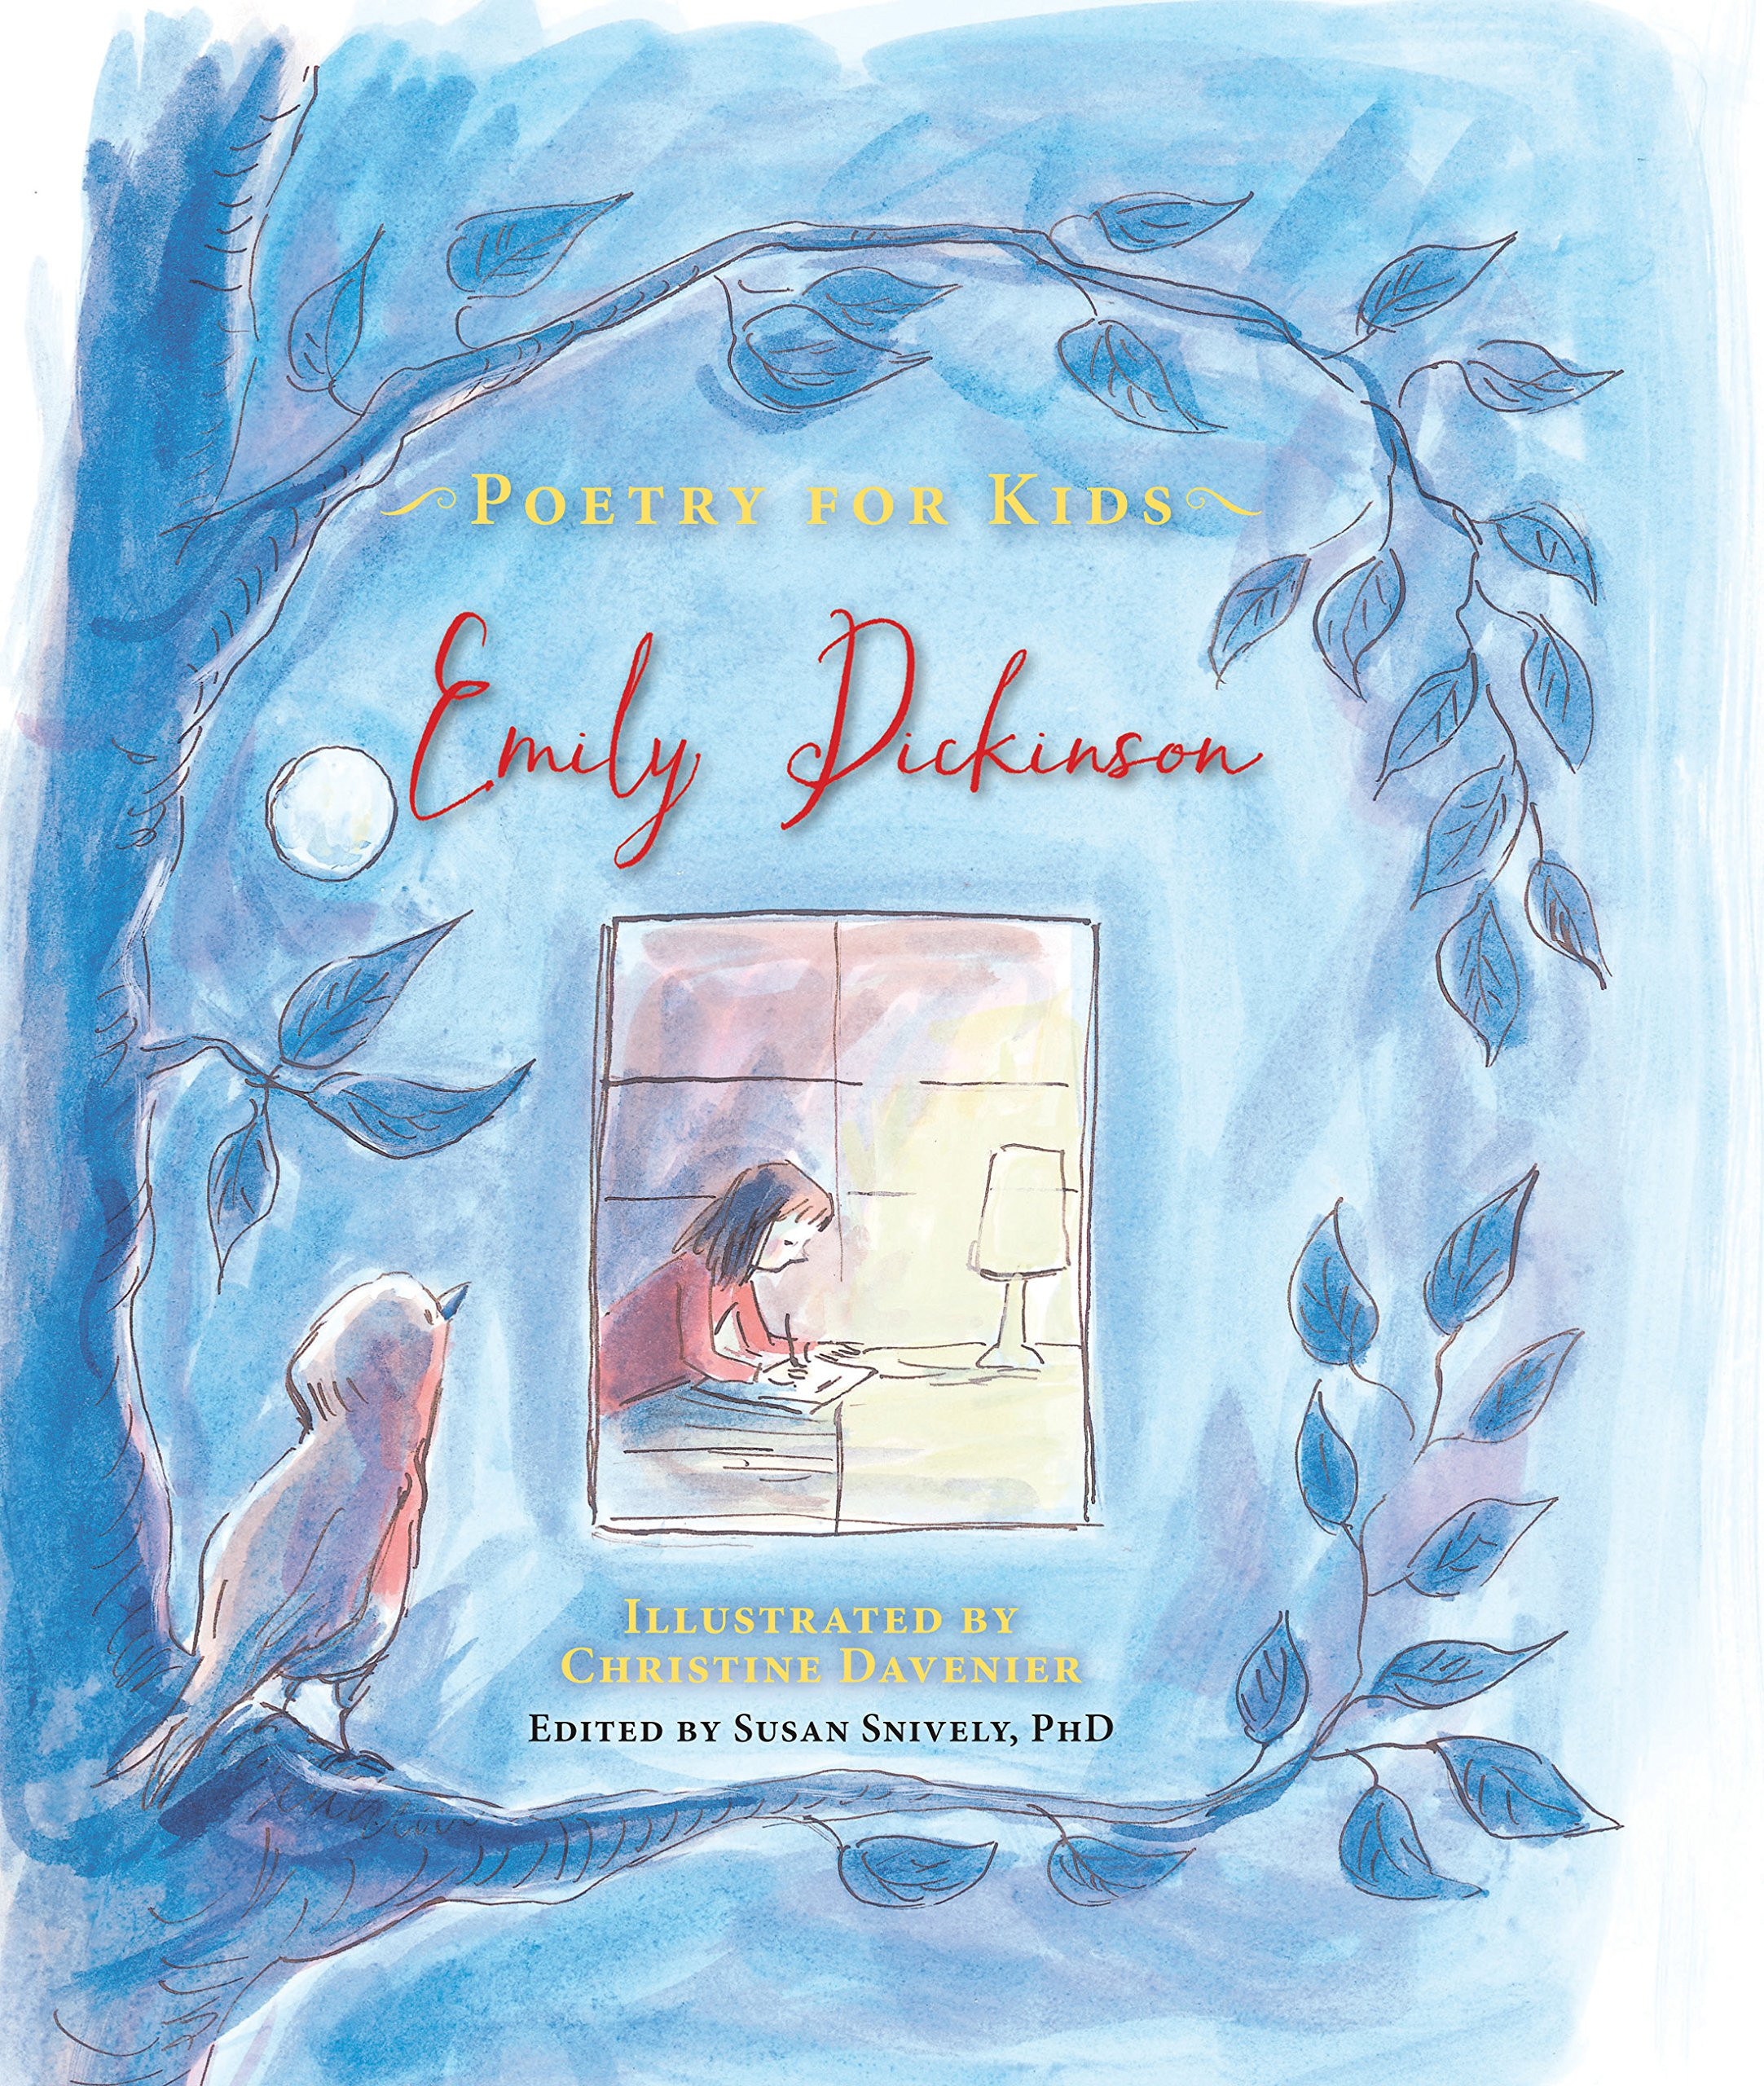 Poetry For Kids Emily Dickinson Susan Snively Diagram 1 Labelled Of A Single Animal Cell Drawn By Emilie Christine Davenier 9781633221178 Books